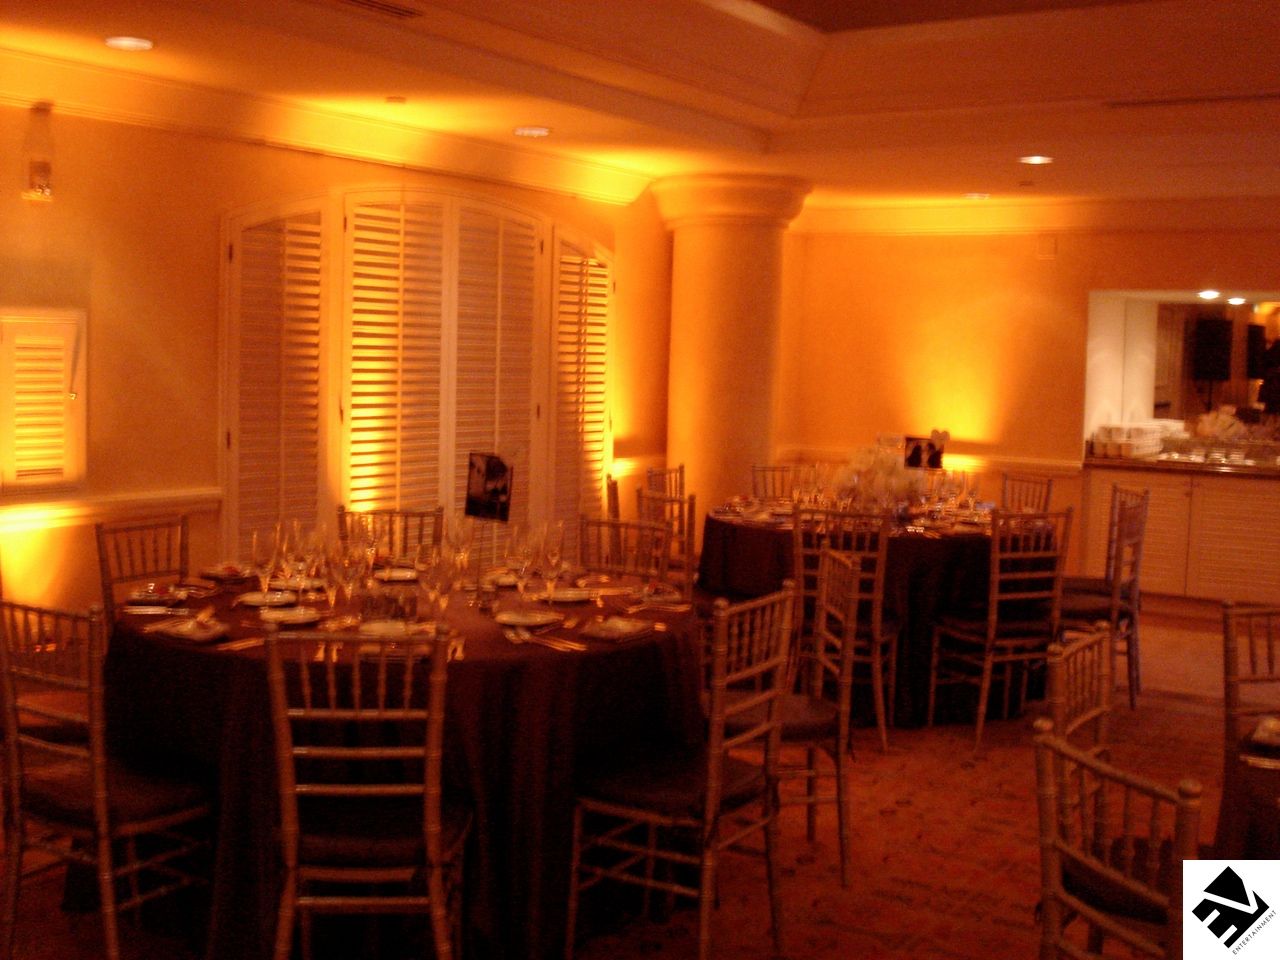 Our most popular package..  Comes with Wireless LED Uplighting to create the perfect mood or accent your wedding's color theme.  The latest in technology allows us to instantly change the color on demand (call for more details)  Packages starting as low as $649